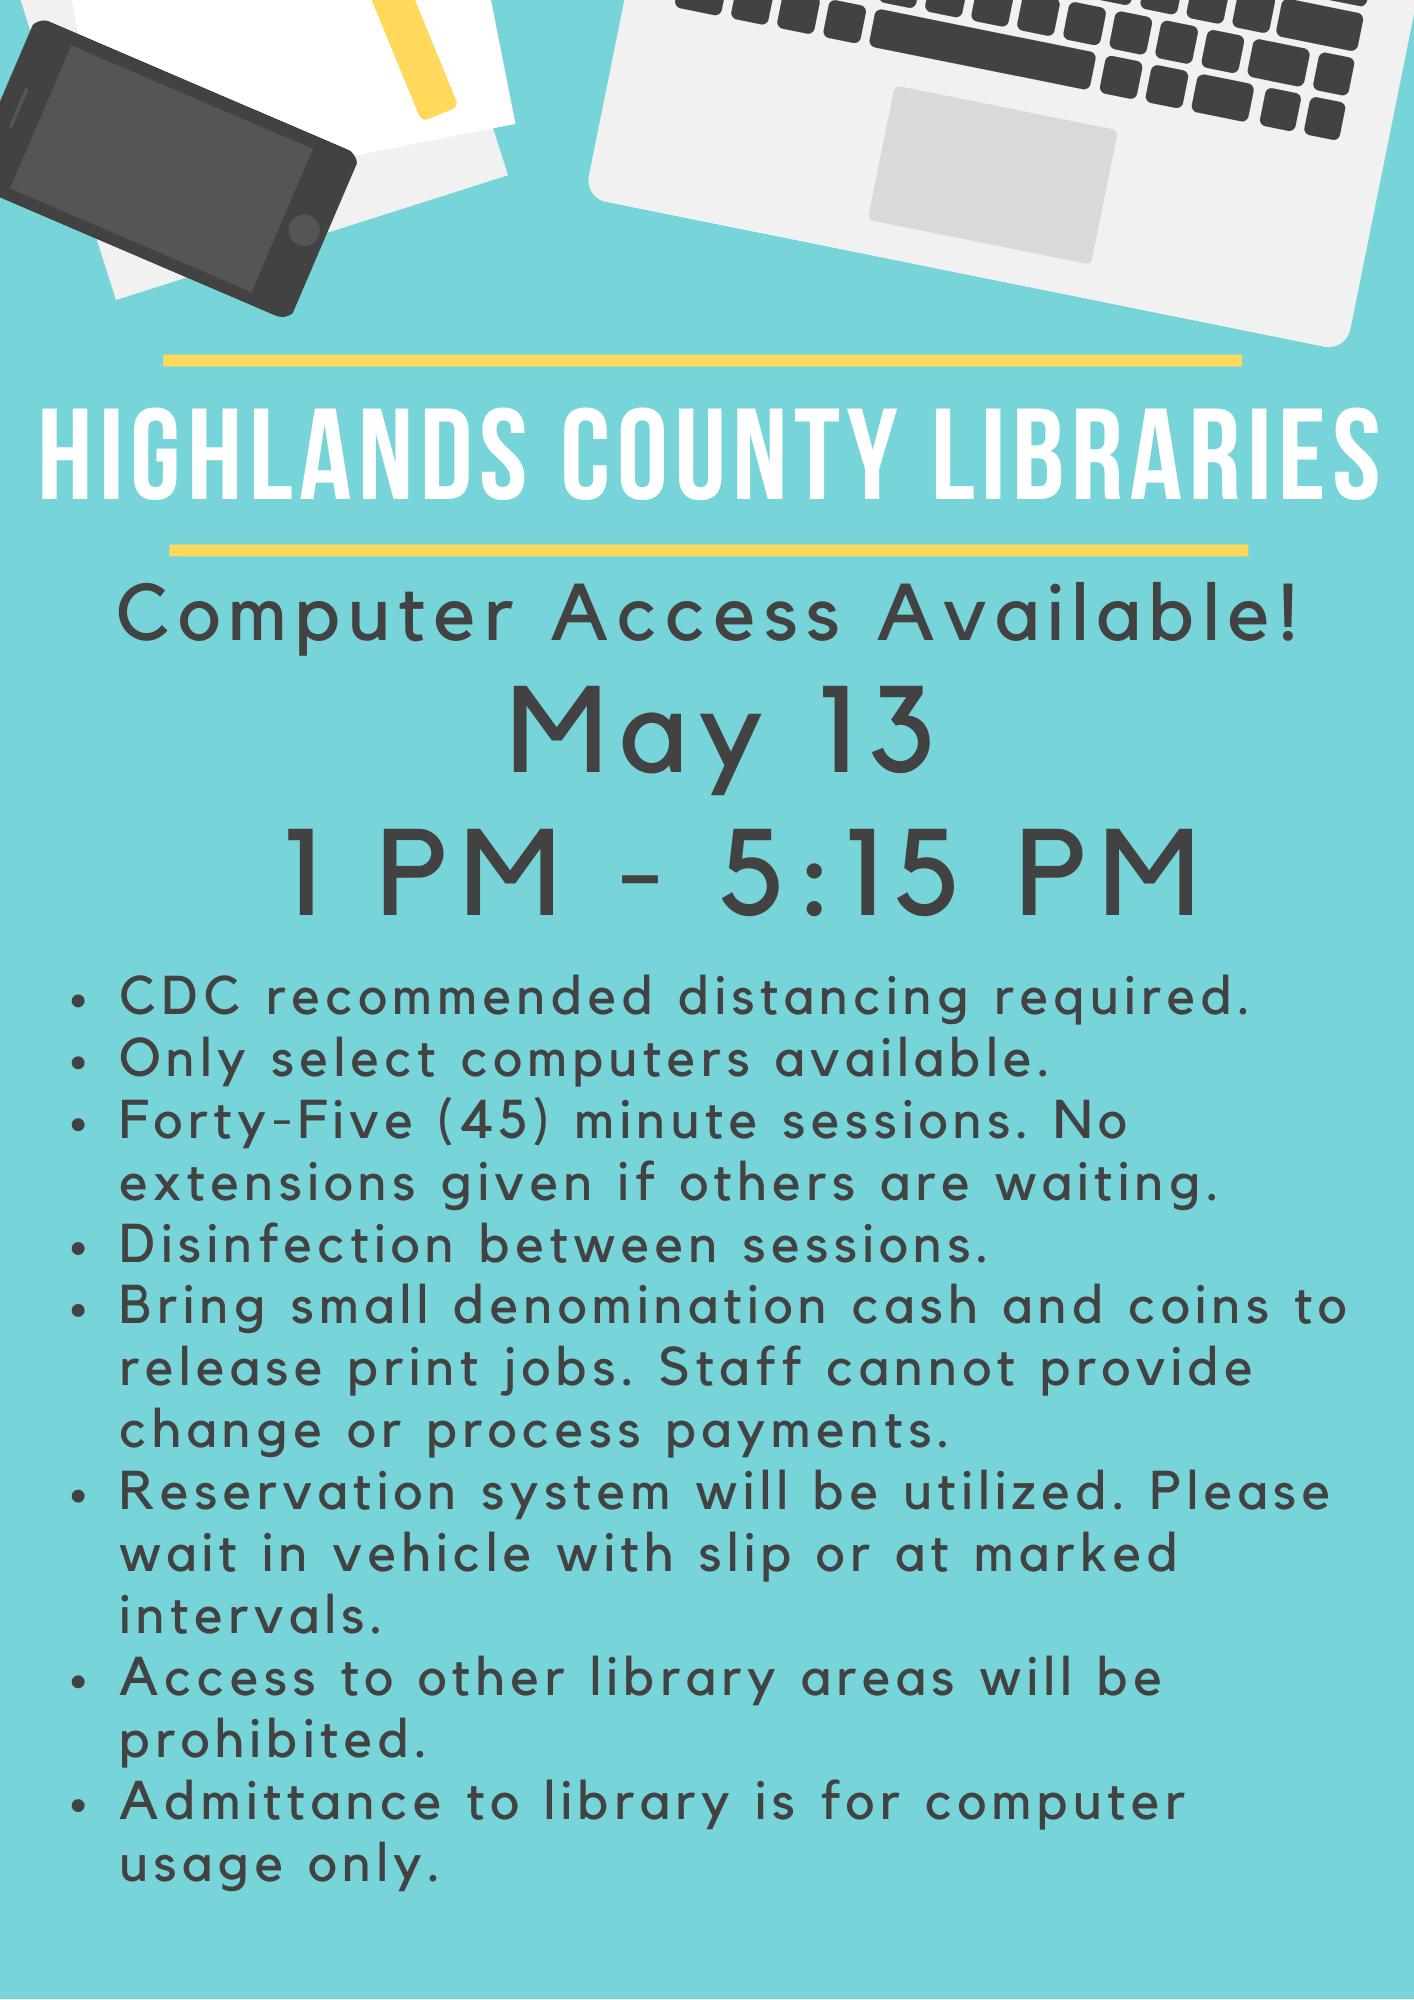 Highlands County Public Libraries will be offering computer usage